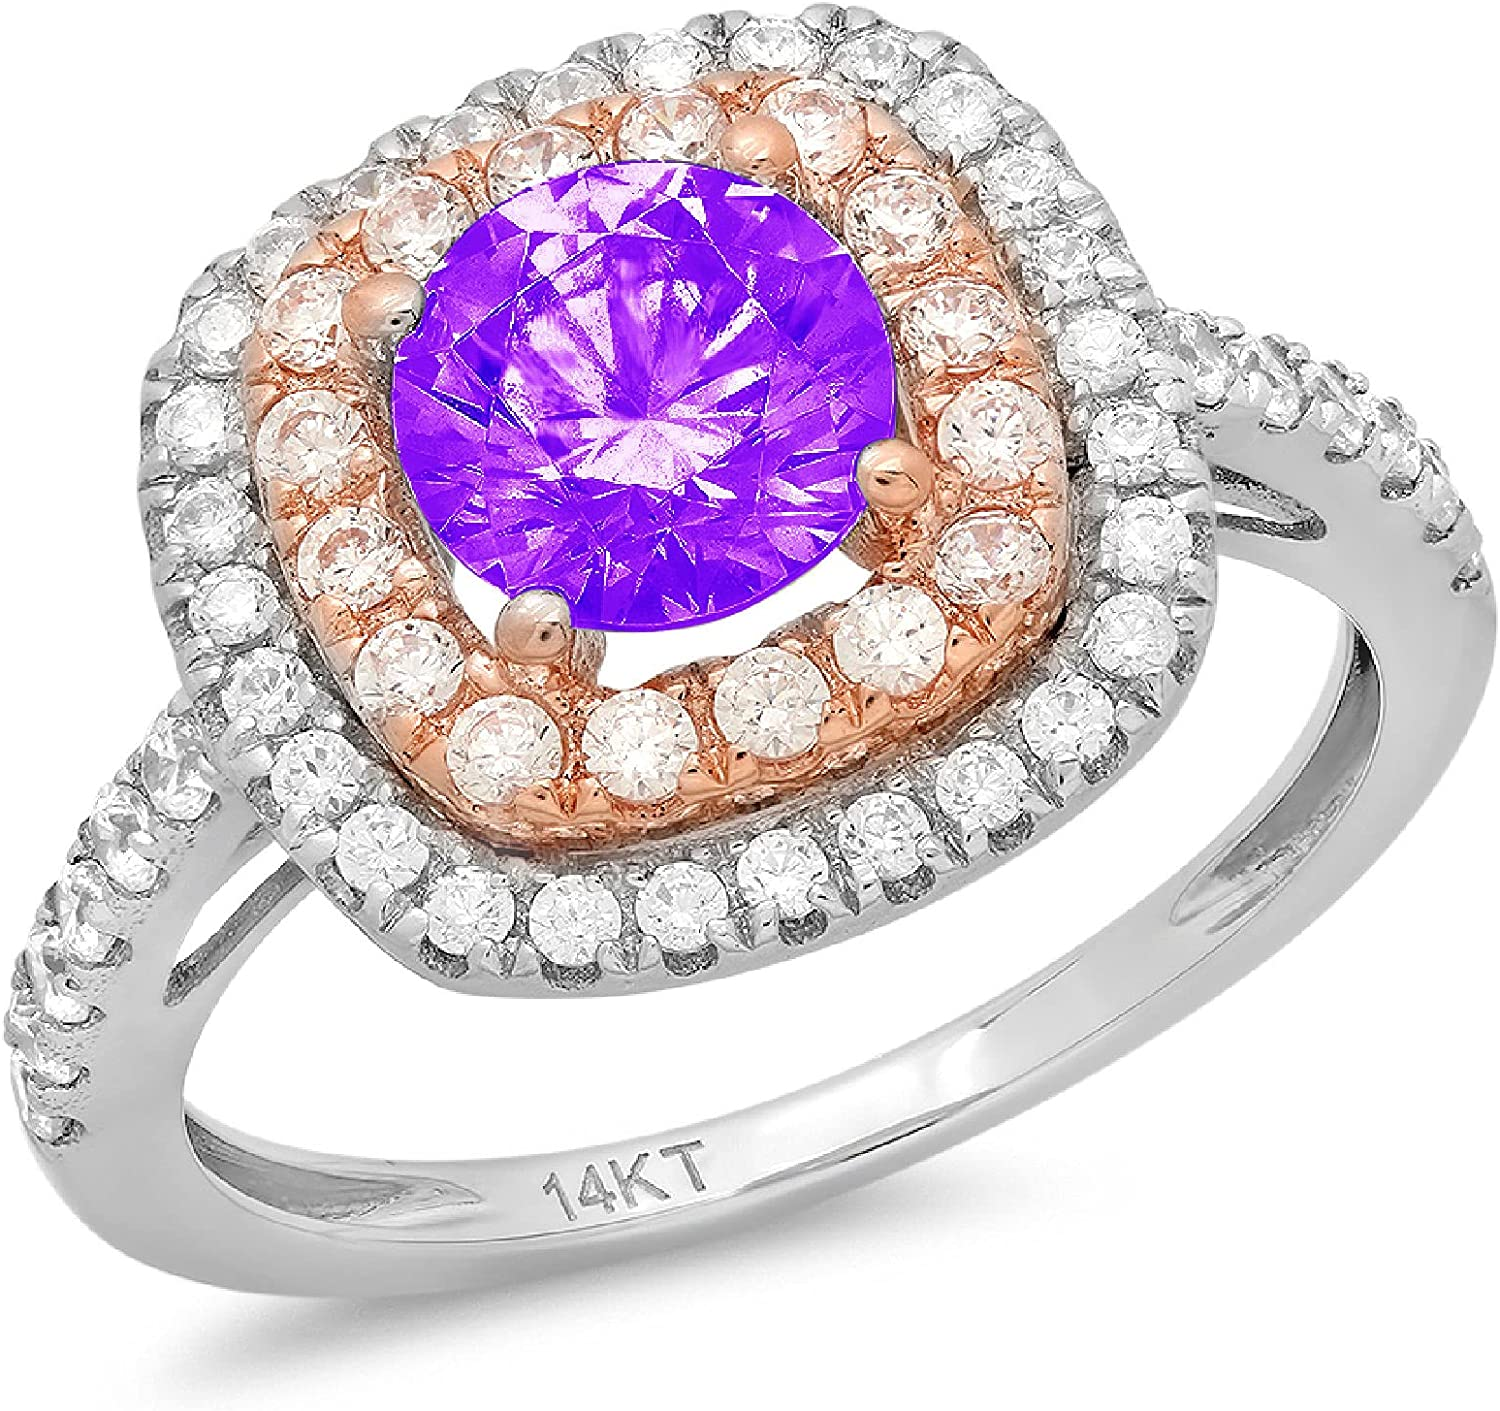 1.75 ct Round Cut Solitaire accent double Halo Natural Purple Amethyst Gem Stone Ideal VVS1 Engagement Promise Statement Anniversary Bridal Wedding Ring 14k two tone Gold